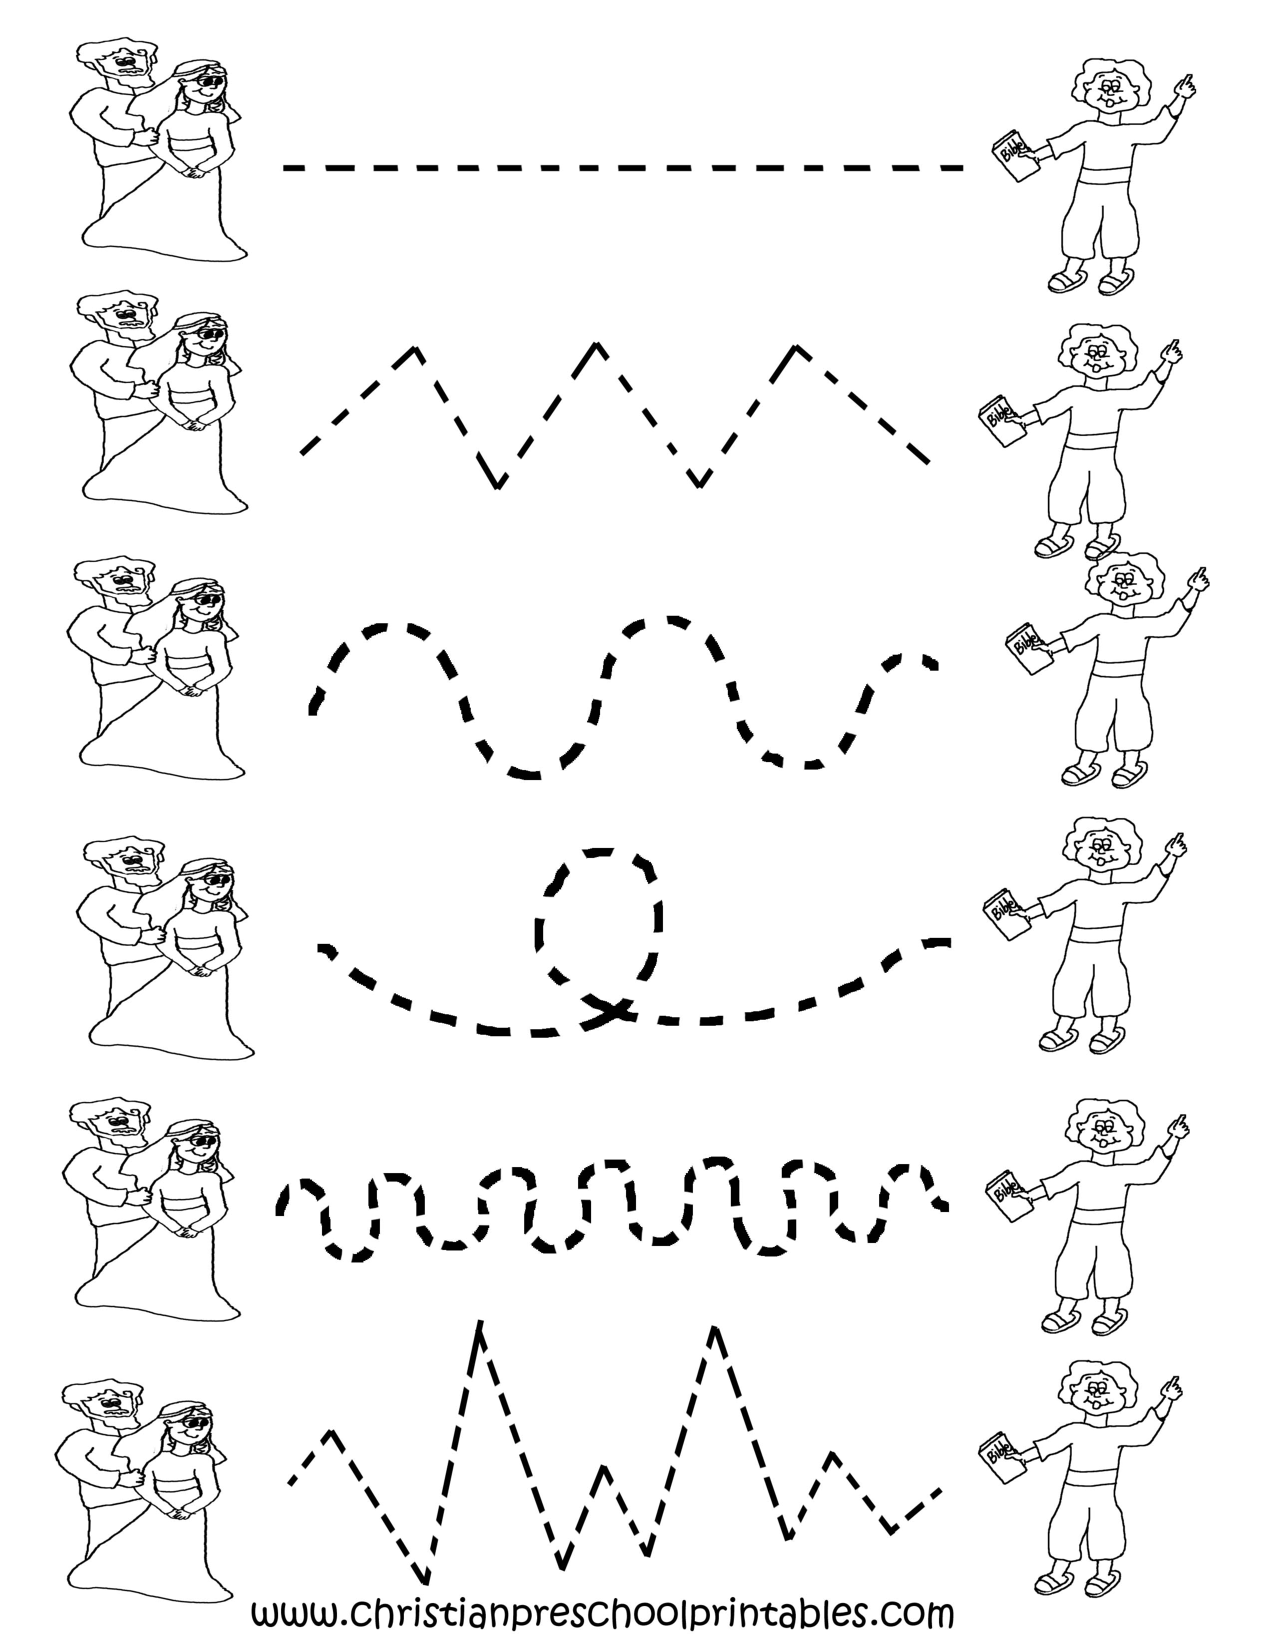 Worksheet Tracer Worksheets 1000 images about abc learning activities on pinterest fine motor maze and dry erase markers